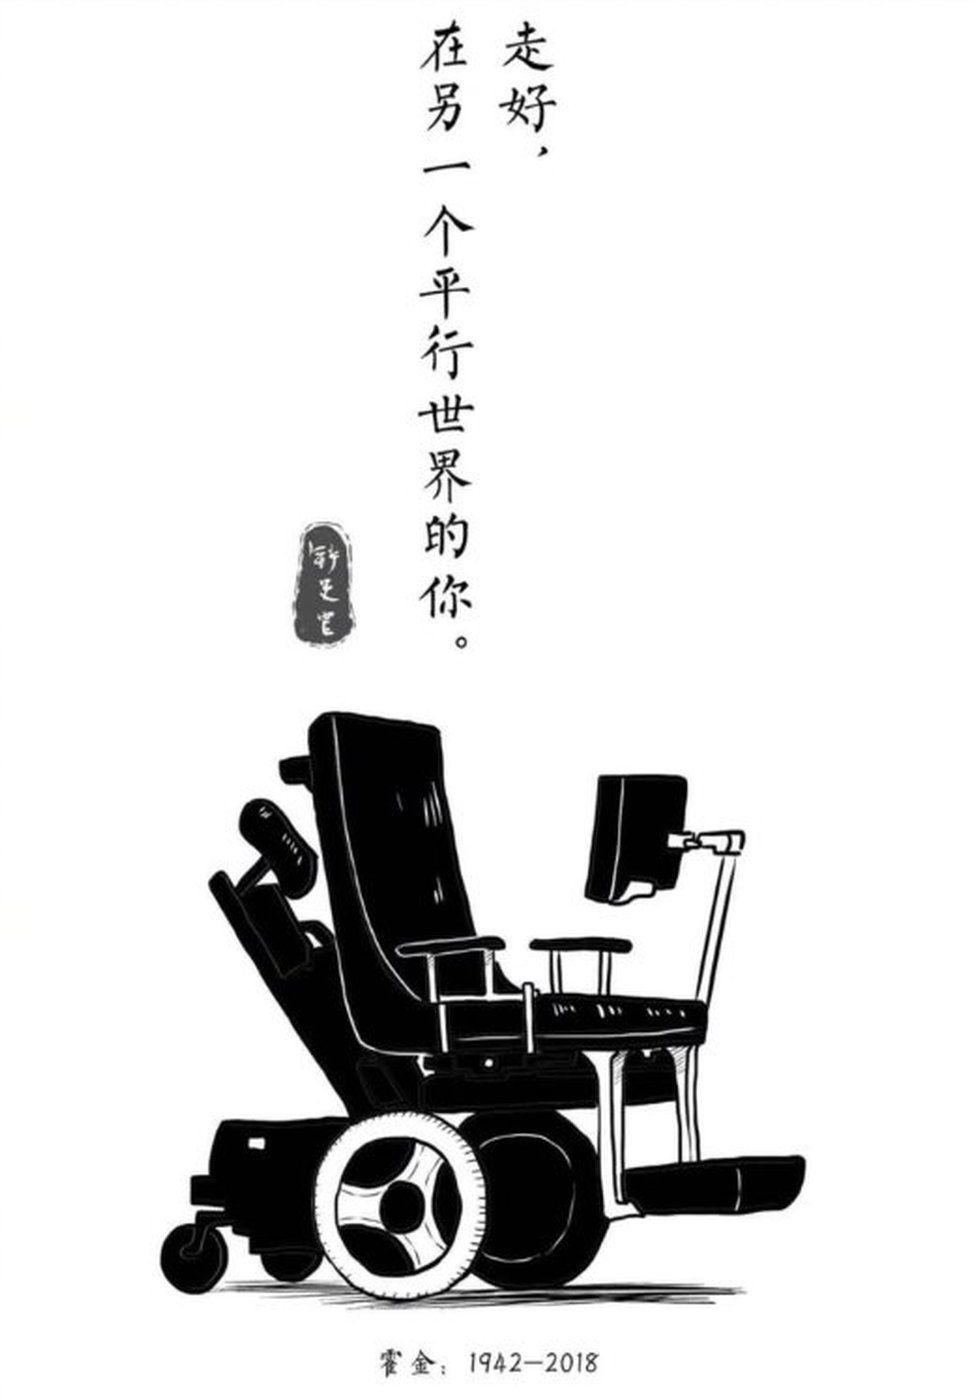 Tribute meme of Stephen Hawking on Weibo